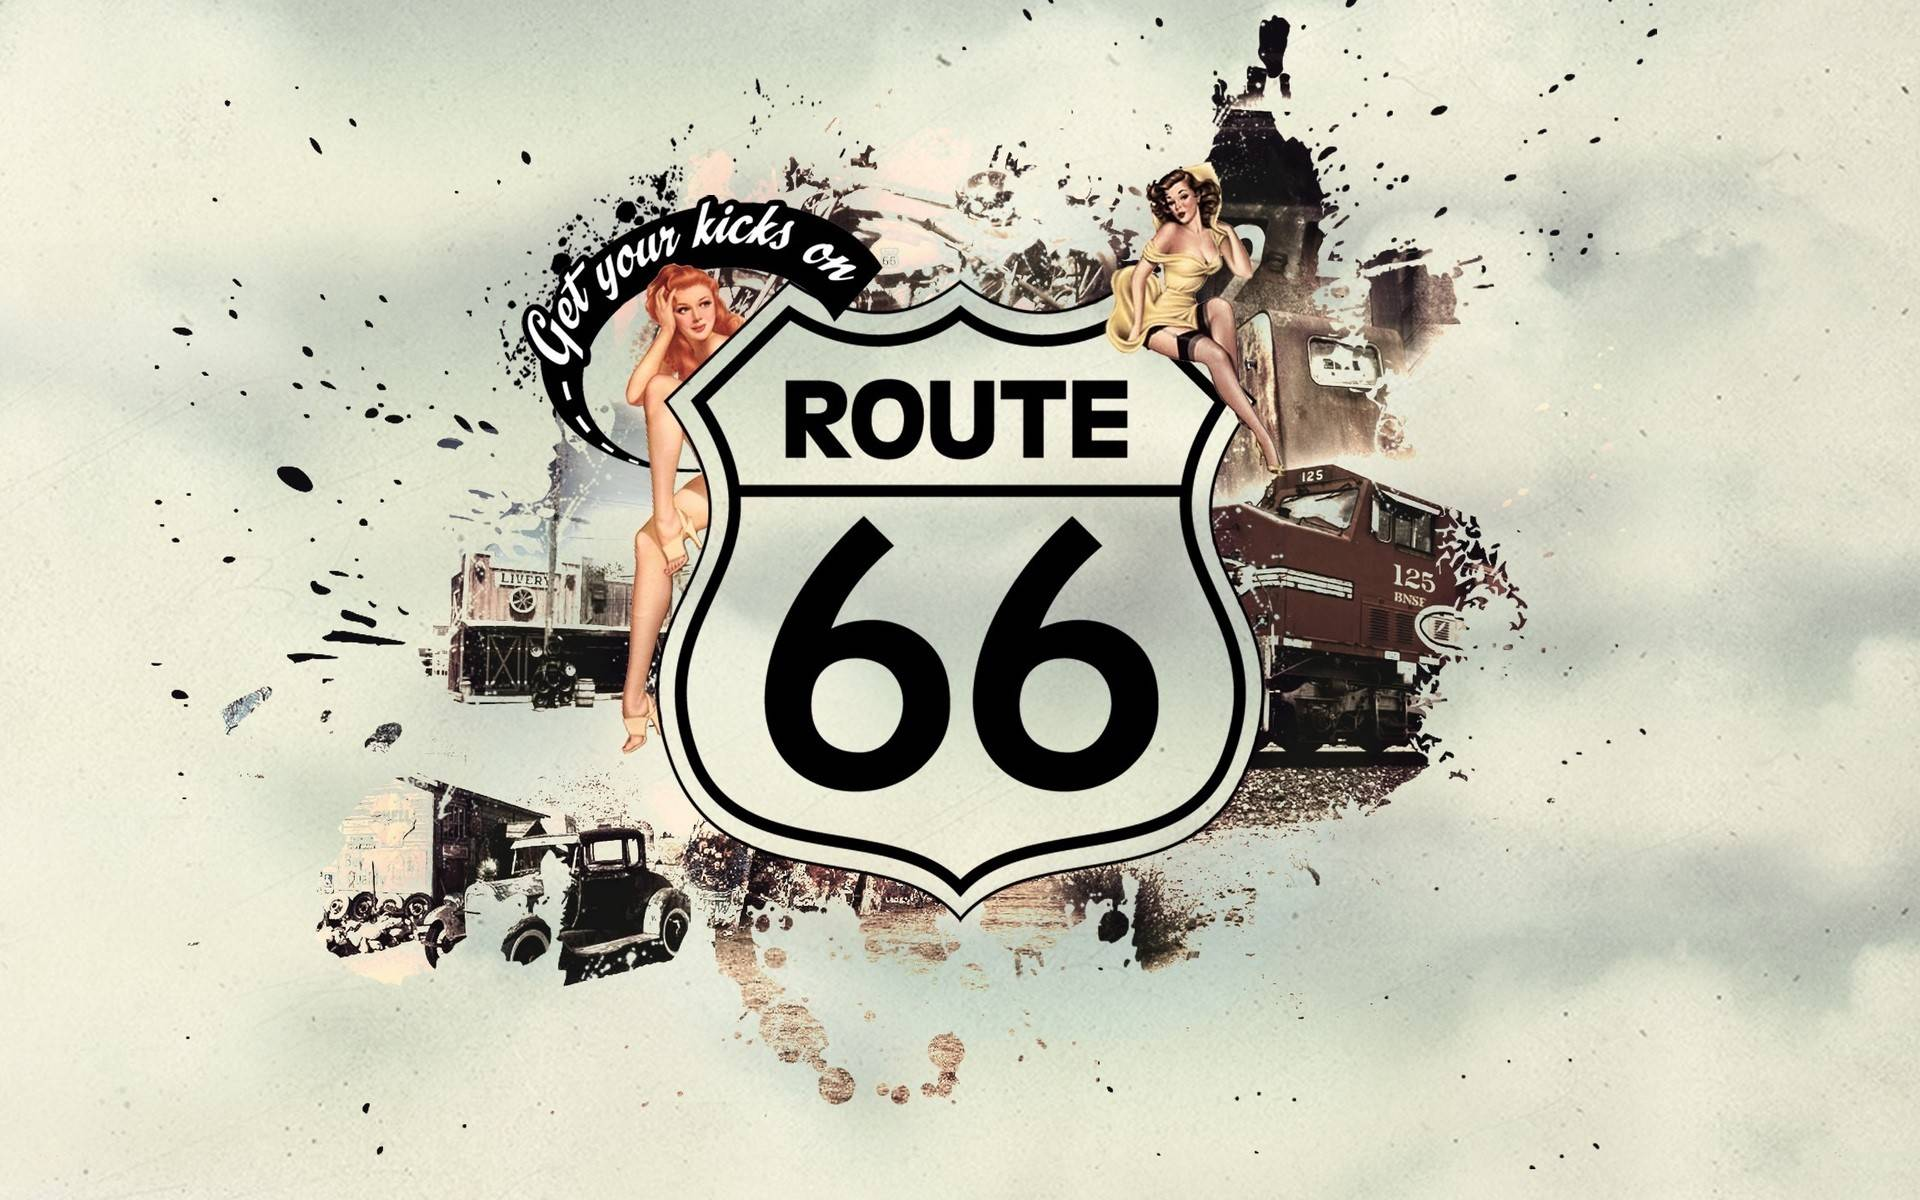 route 66 wallpapers wallpaper cave. Black Bedroom Furniture Sets. Home Design Ideas